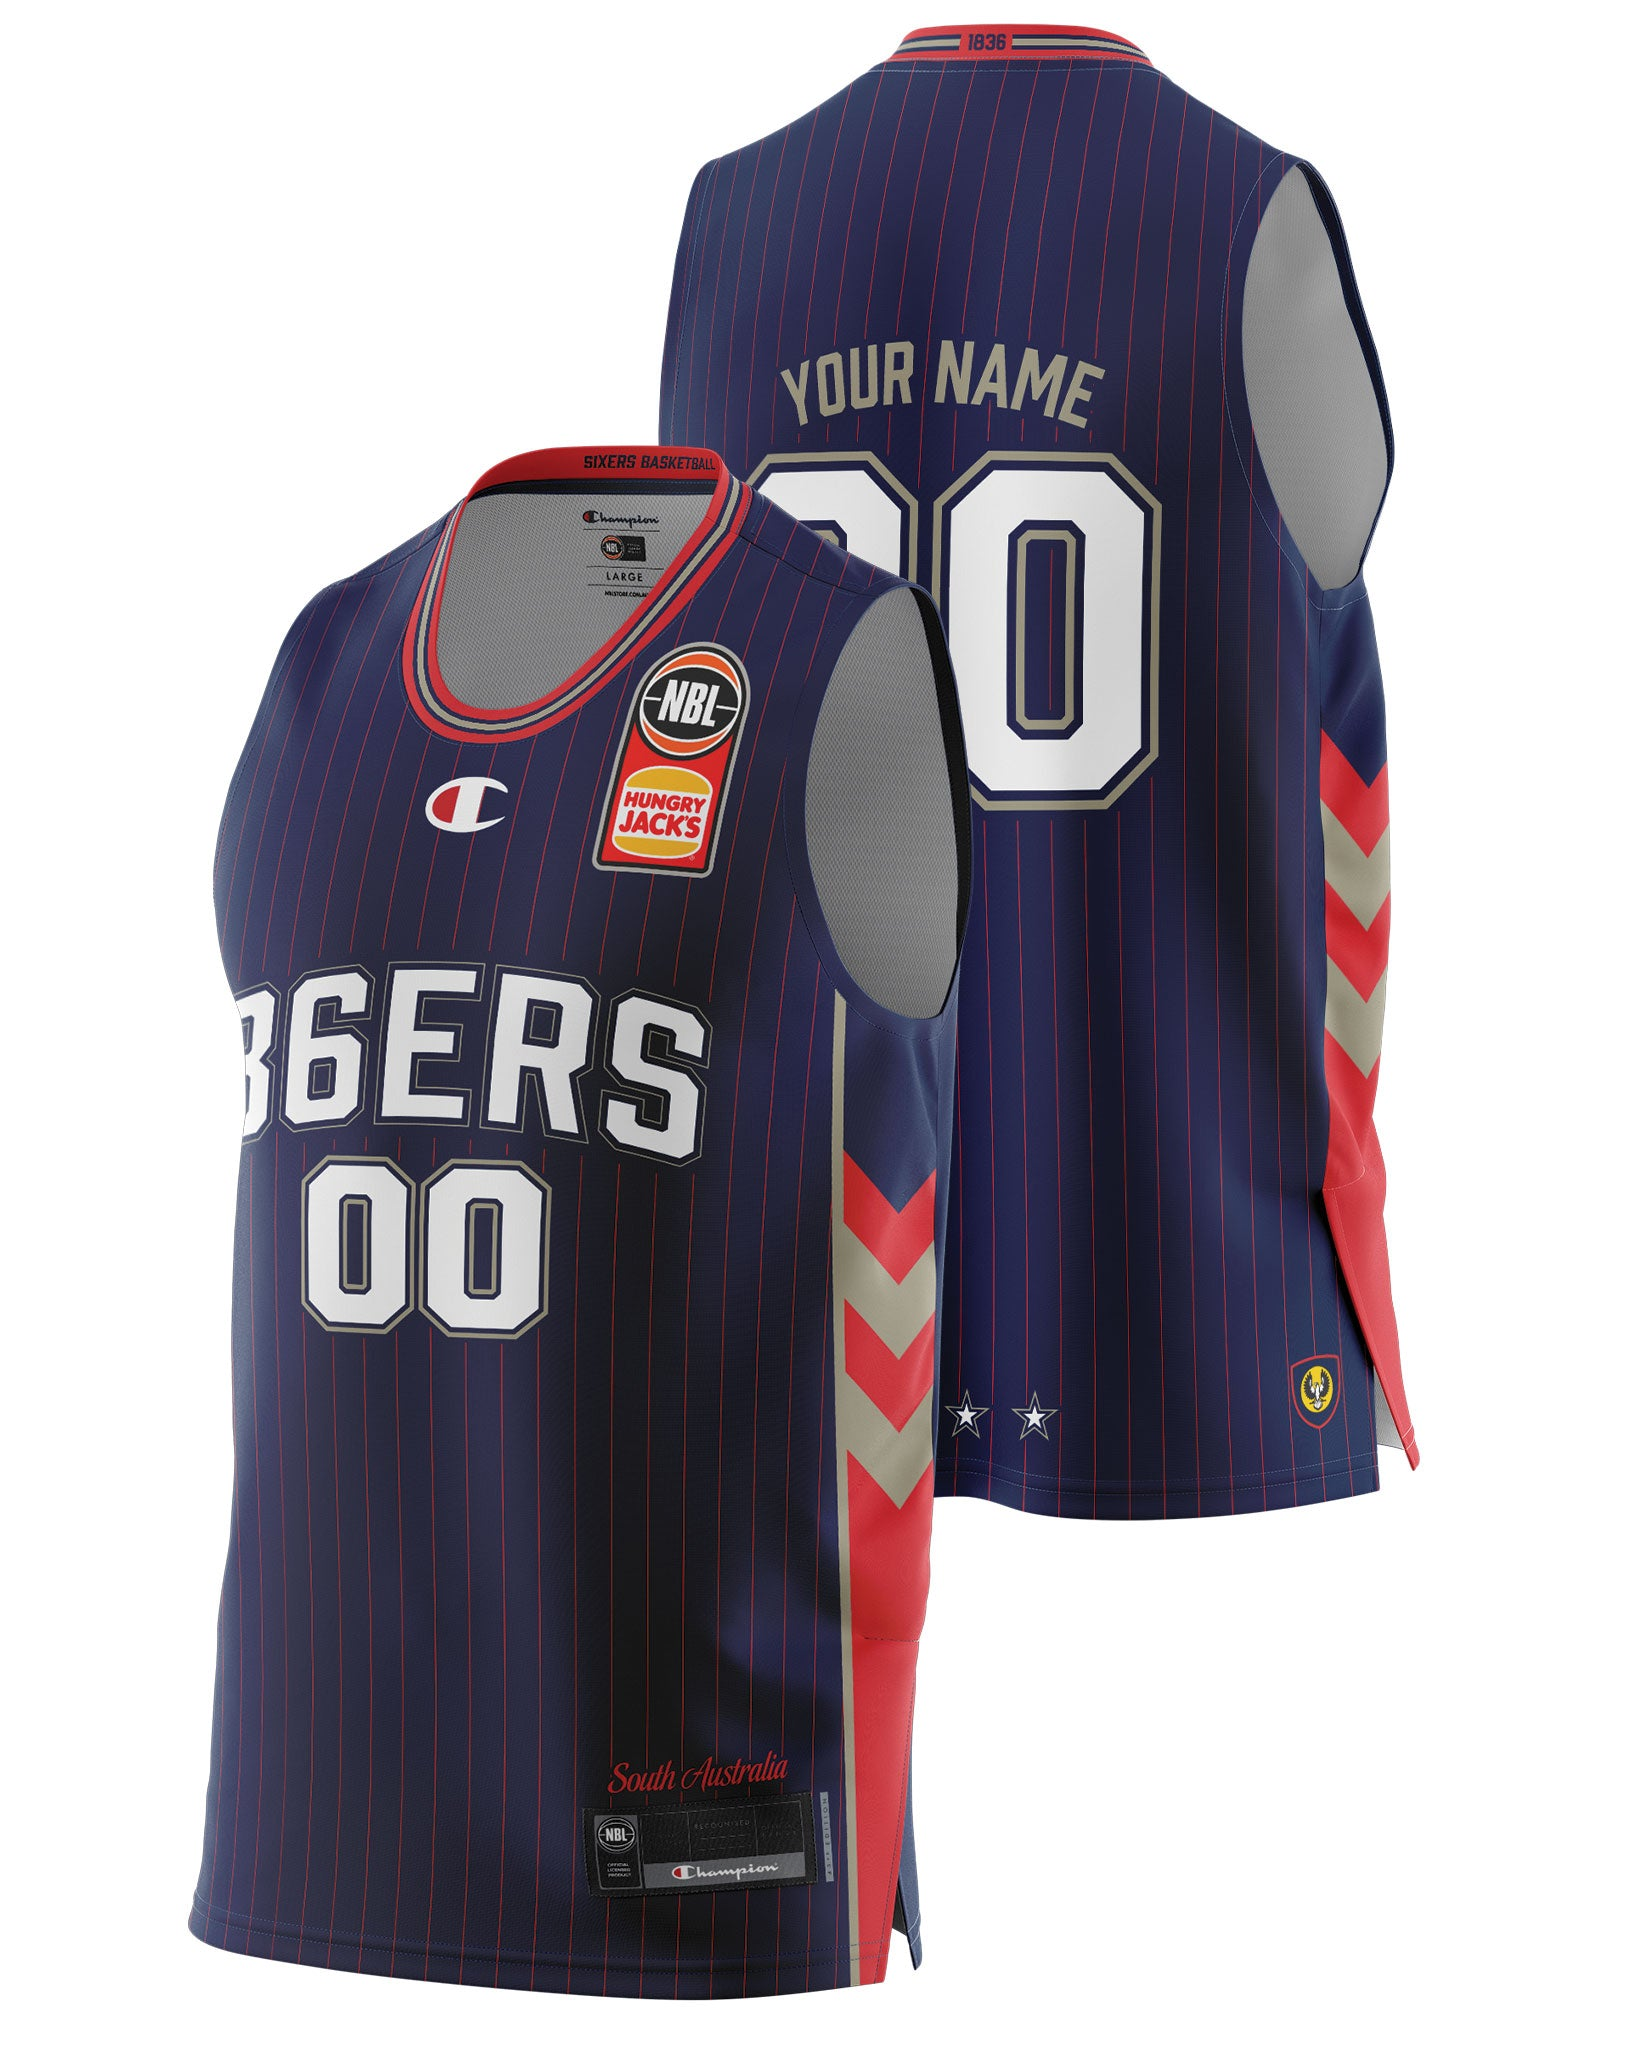 Adelaide 36ers 20/21 Authentic Home Jersey - Personalised